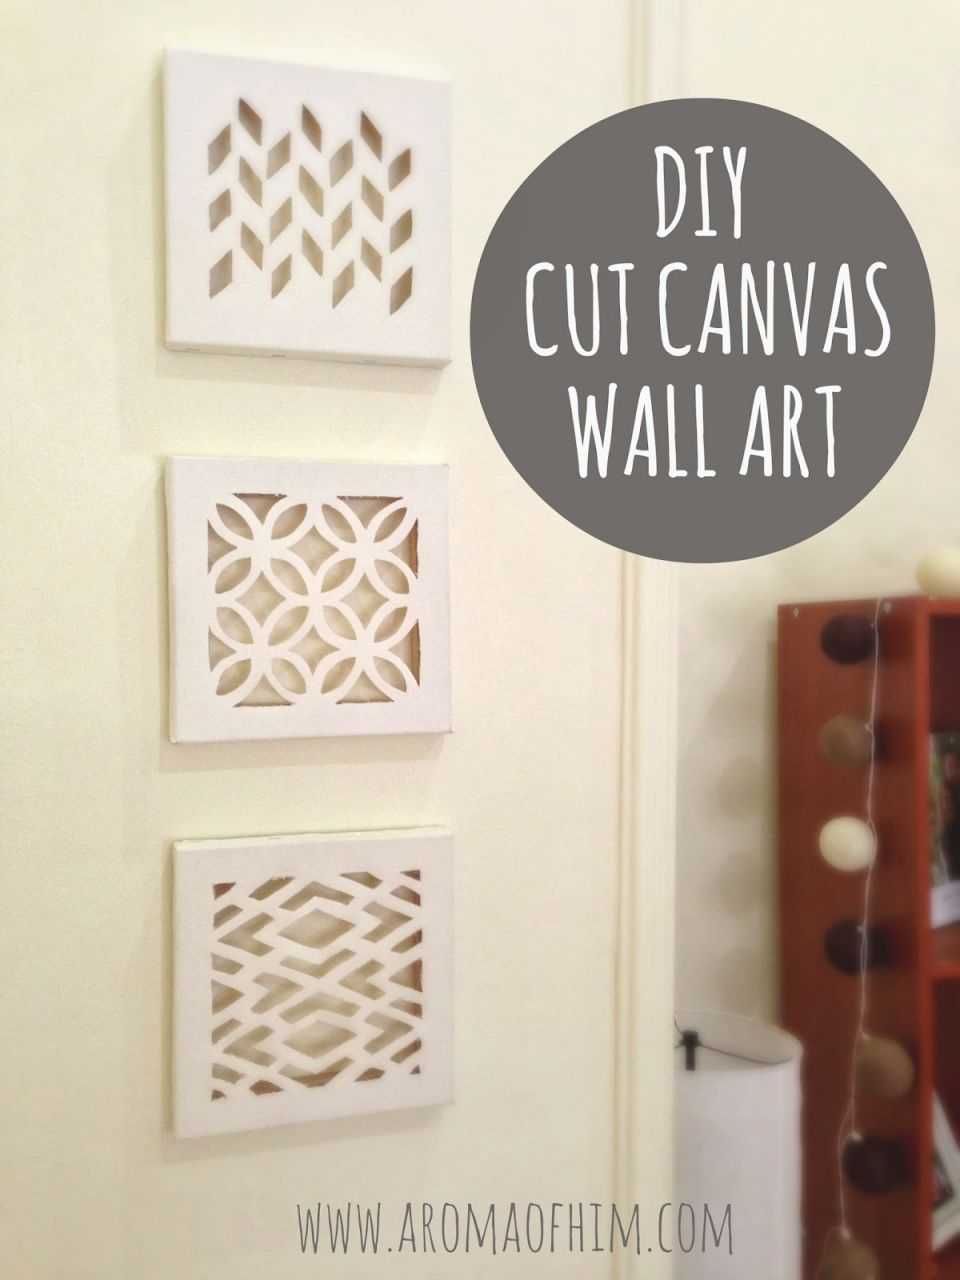 76 Diy Wall Art Ideas For Those Blank Walls within Wall Decor Ideas For Bedroom Diy